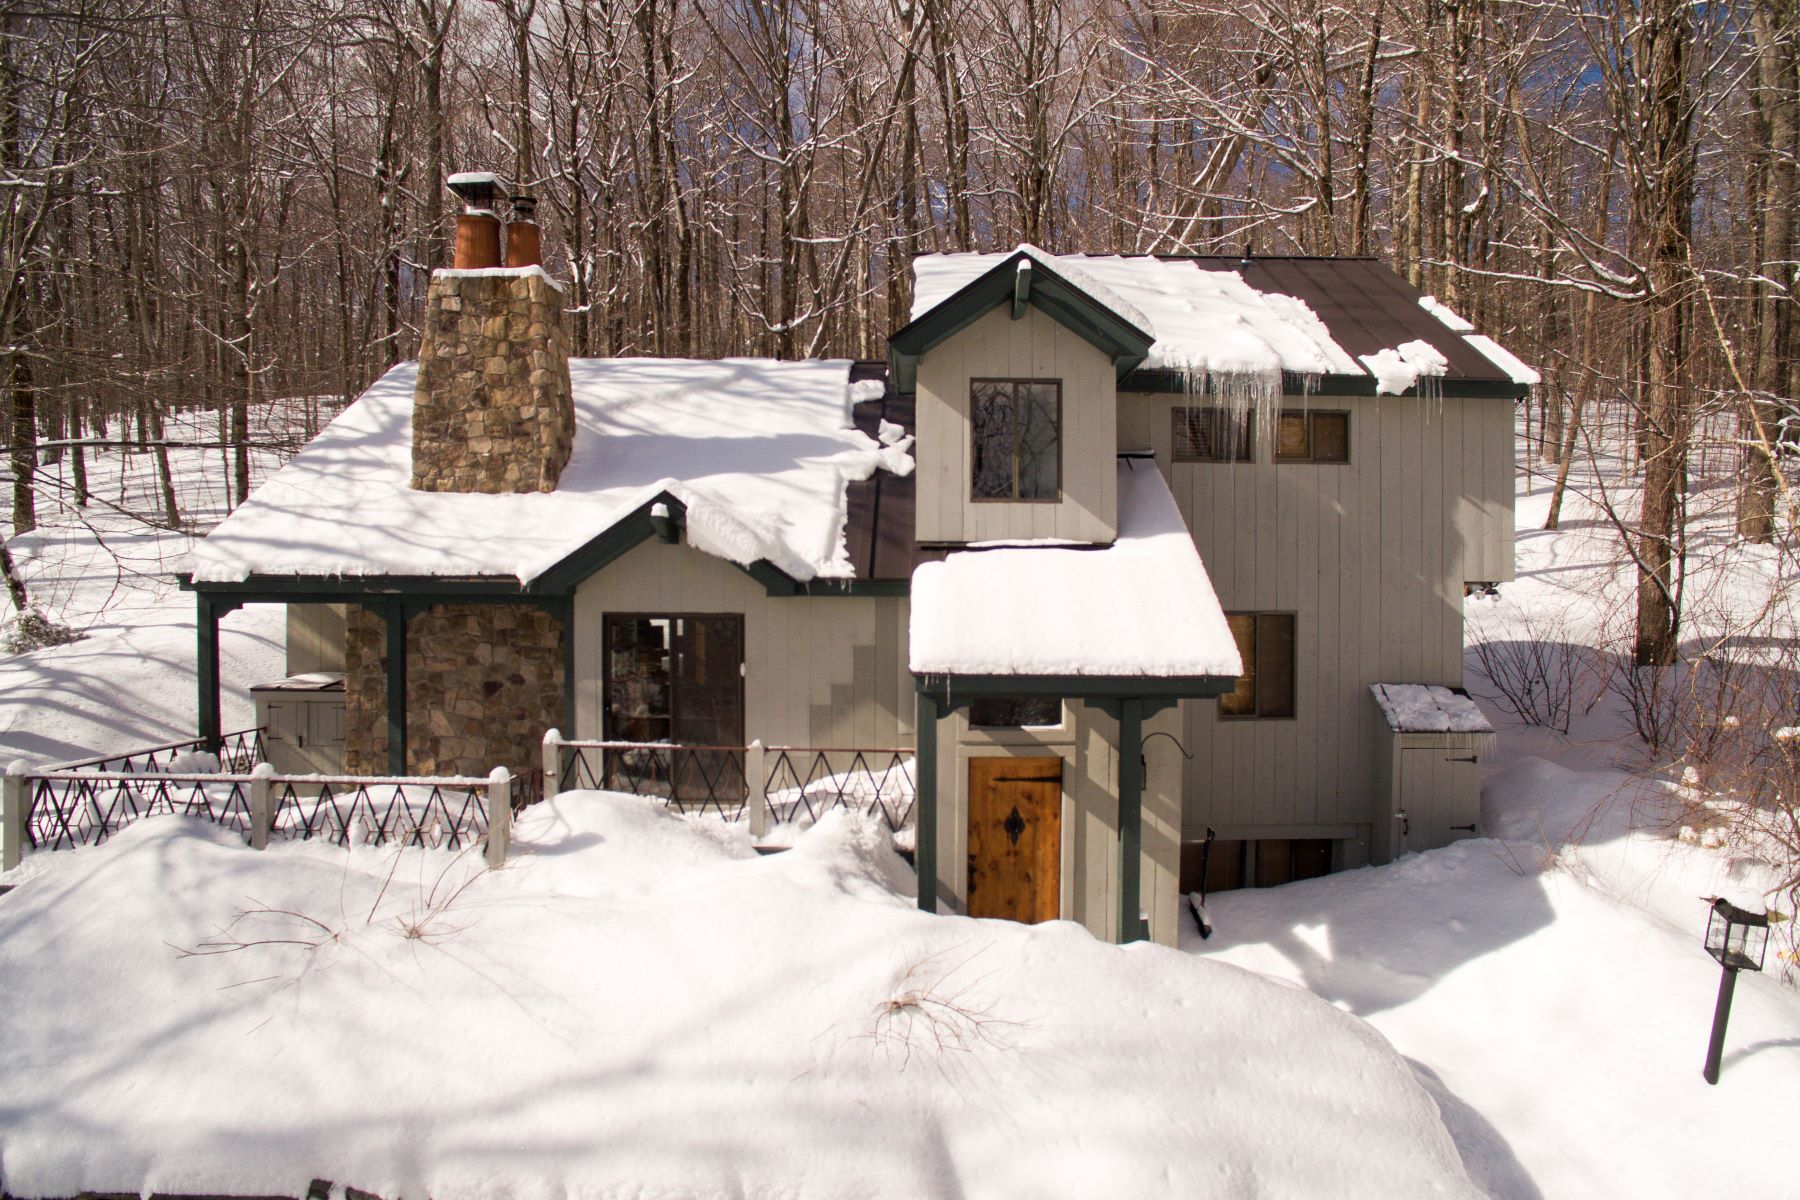 Single Family Home for Sale at 13 Roundtree Road, Winhall 13 Roundtree Rd Winhall, Vermont 05340 United States